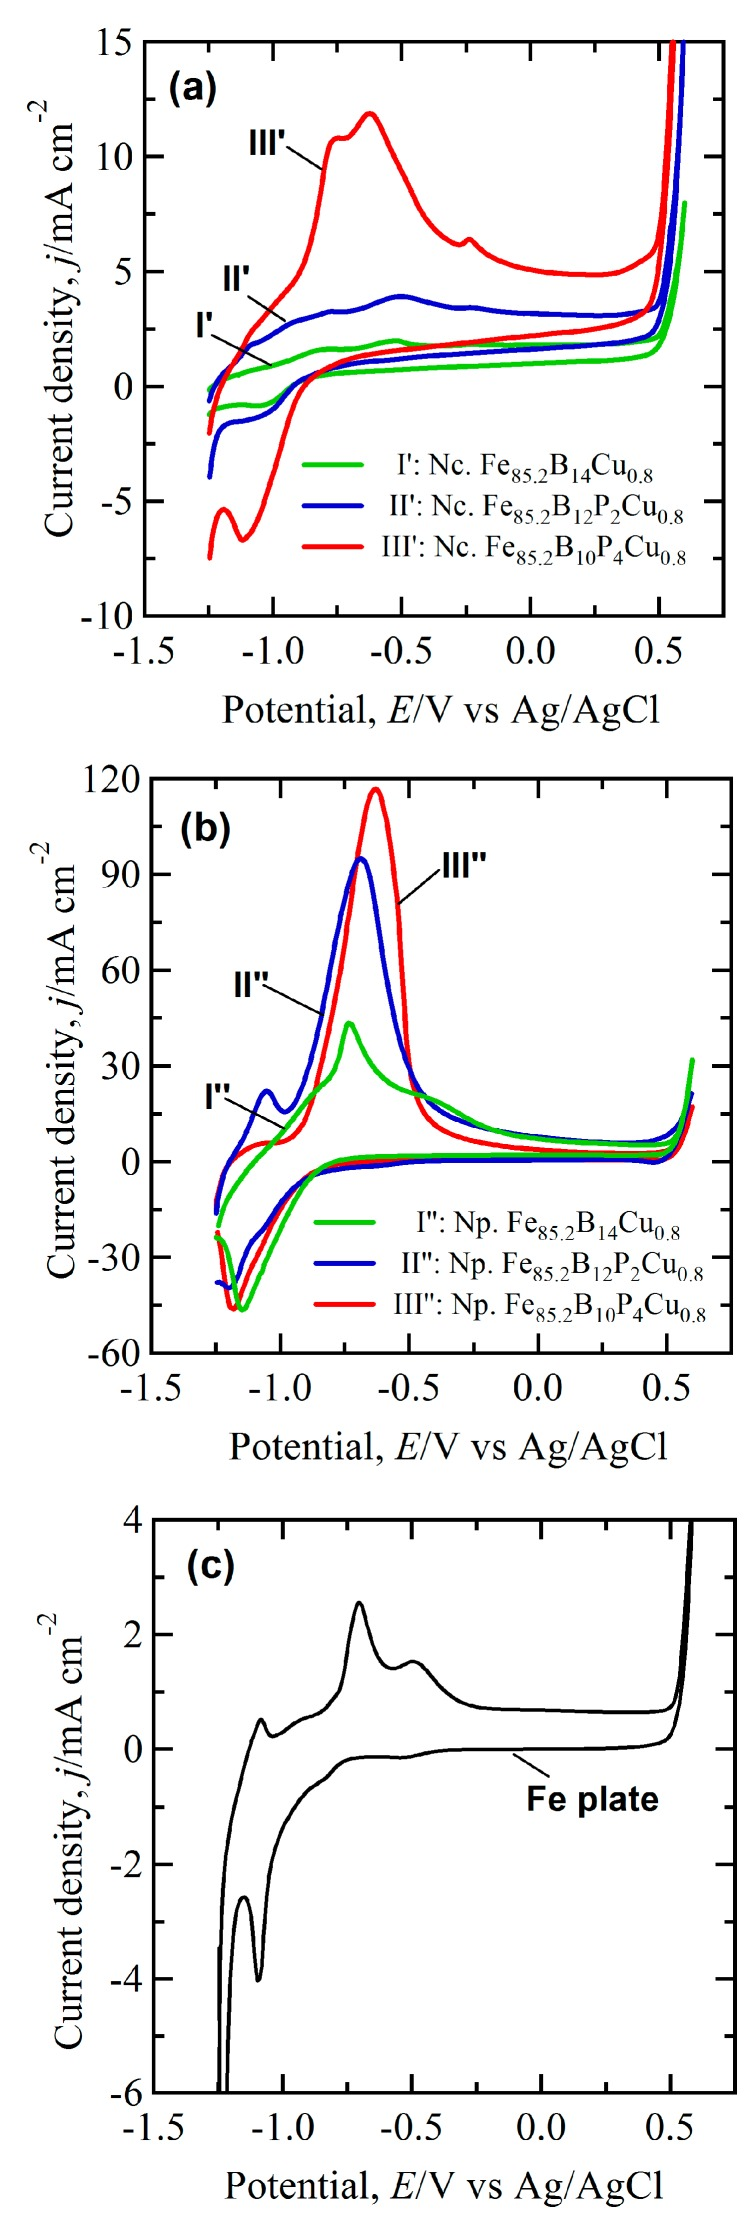 CV curves of nanocrystalline ( a ) nanoporous; ( b ) electrodes and pure Fe plate; ( c ) in 6.0 M KOH solution. Scan rate: 50 mV/s. Nanocrystalline electrodes: Fe 85.2 B 14 Cu 0.8 (I′), Fe 85.2 B 12 P 2 Cu 0.8 (II′) and Fe 85.2 B 10 P 4 Cu 0.8 (III′) alloys after annealing of amorphous precursor alloys. Nanoporous electrodes: Fe 85.2 B 14 Cu 0.8 (I′′), Fe 85.2 B 12 P 2 Cu 0.8 (II′′) and Fe 85.2 B 10 P 4 Cu 0.8 (III′′) alloys after dealloying of nanocrystalline precursor alloys in 0.1 M H 2 SO 4 solution for 7.2 ks.